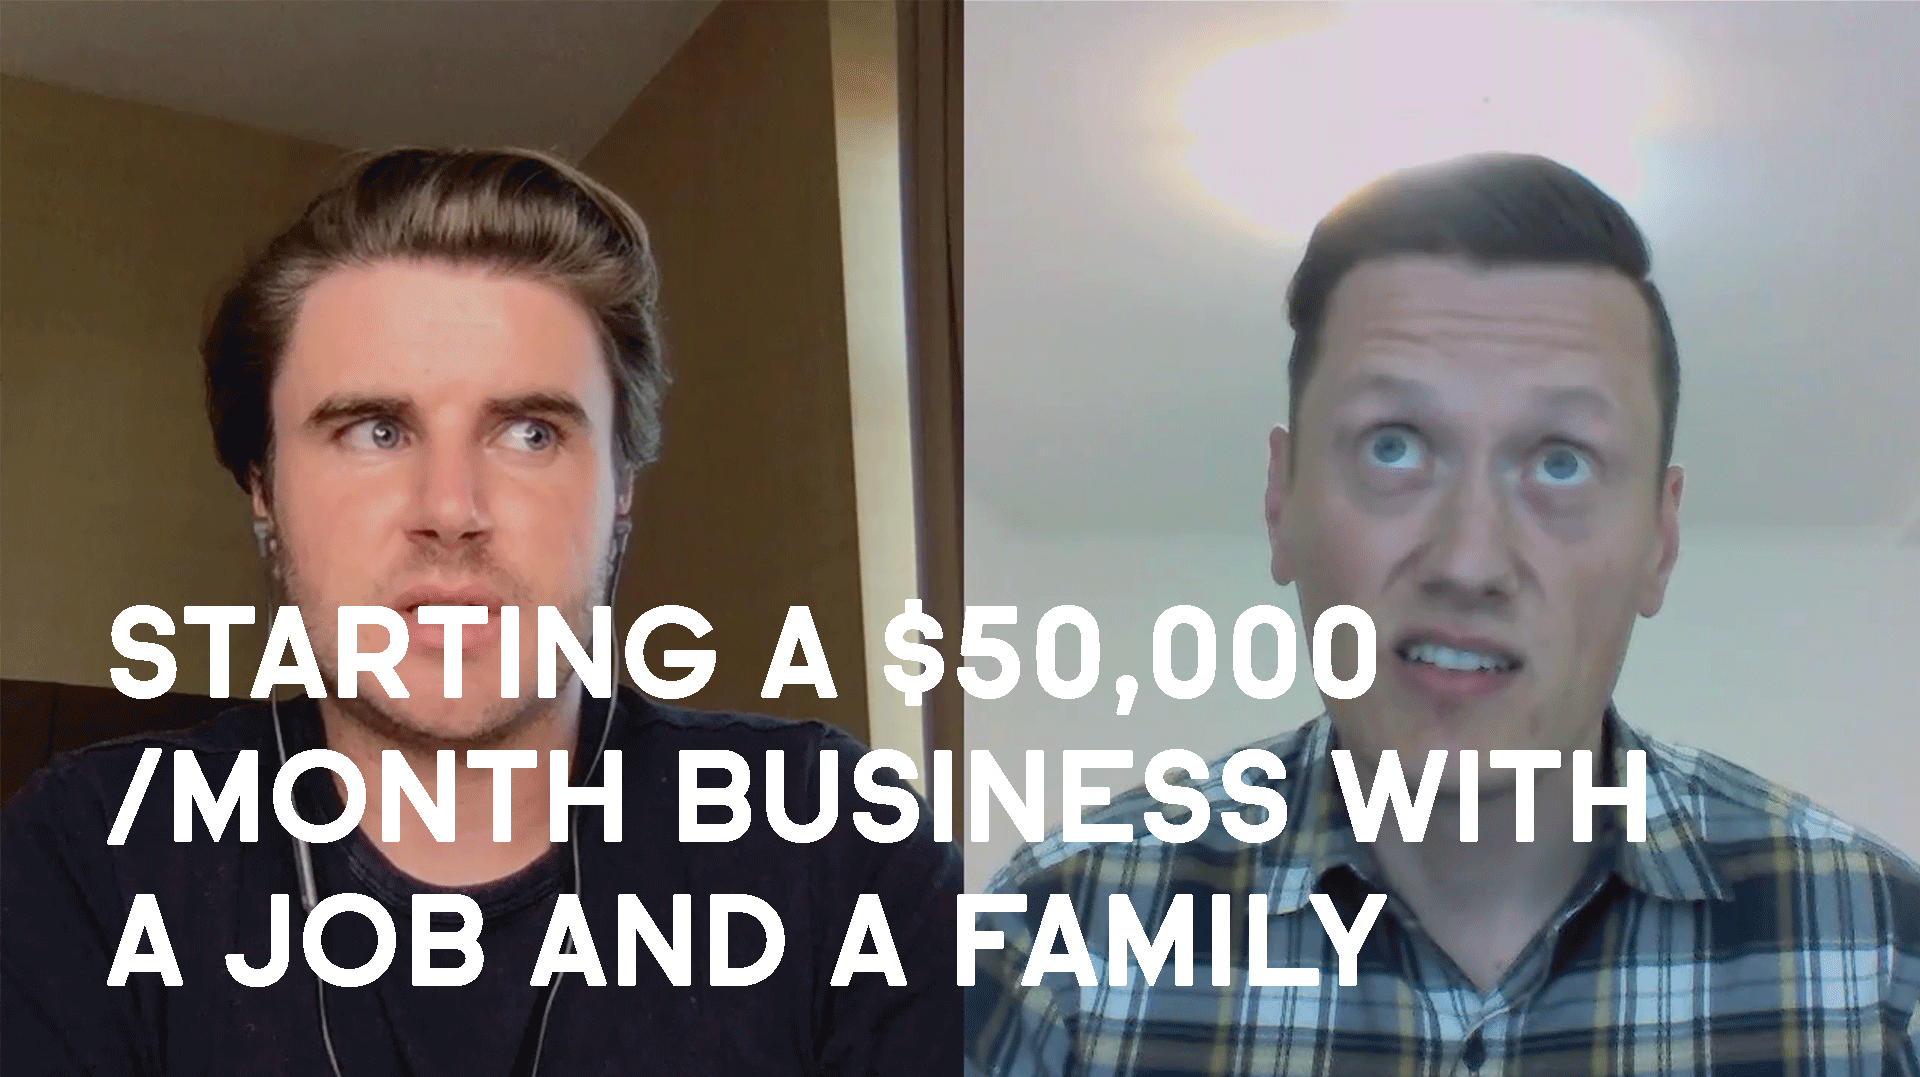 Starting A $50,000 /month Business With A Job & A Family: Here's How Todd Did It